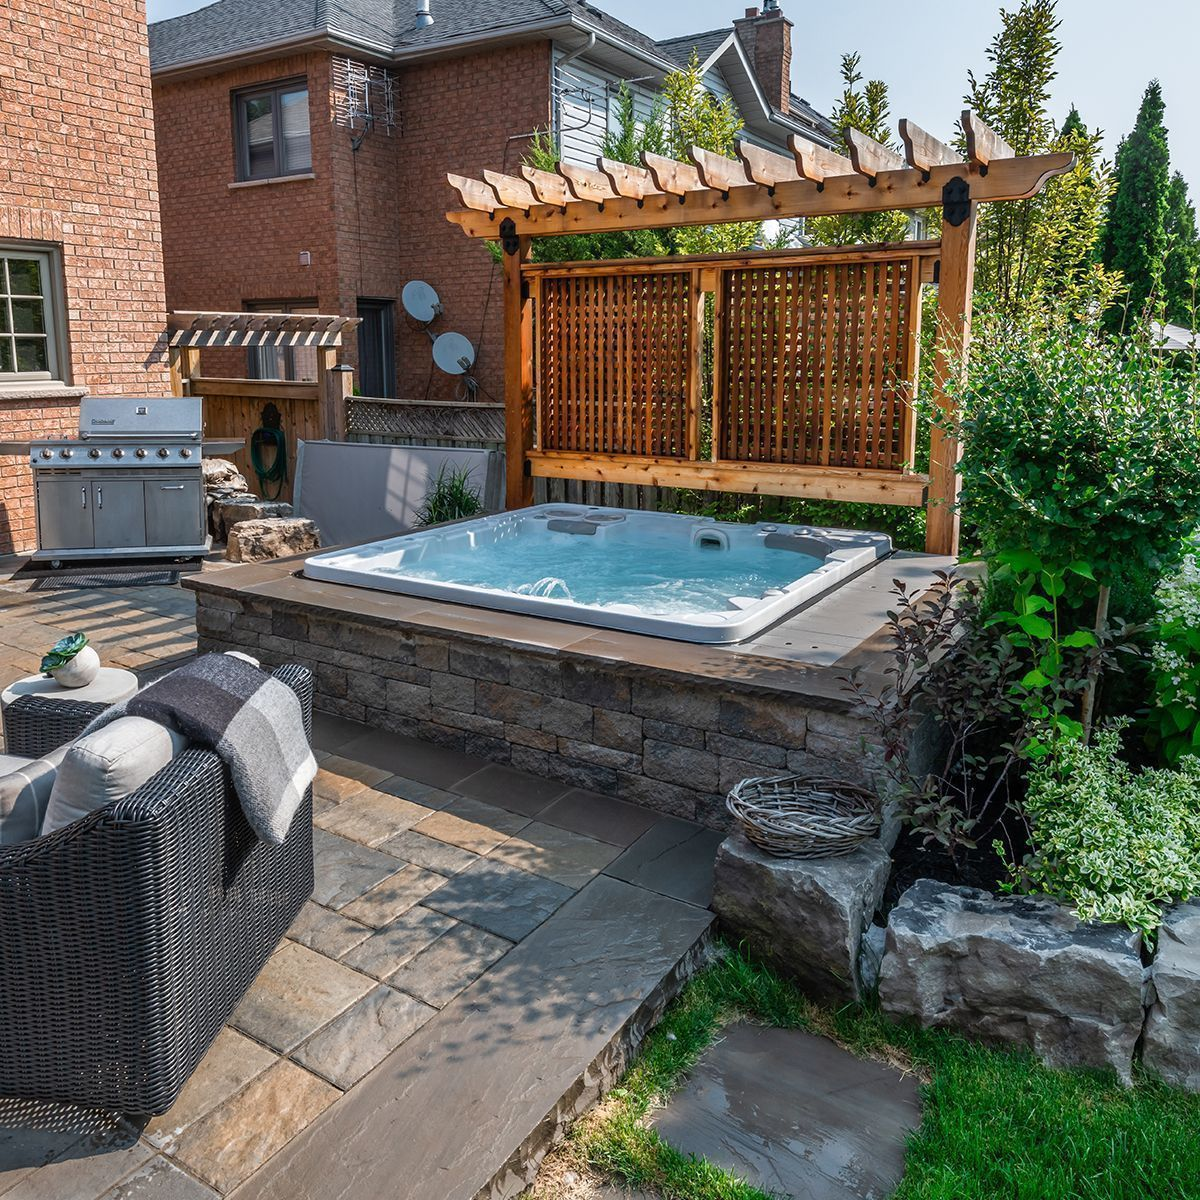 Photo of 34 Inspiring Hot Tub Patio Design Ideas For Your Outdoor Decor … be laid to easily support your